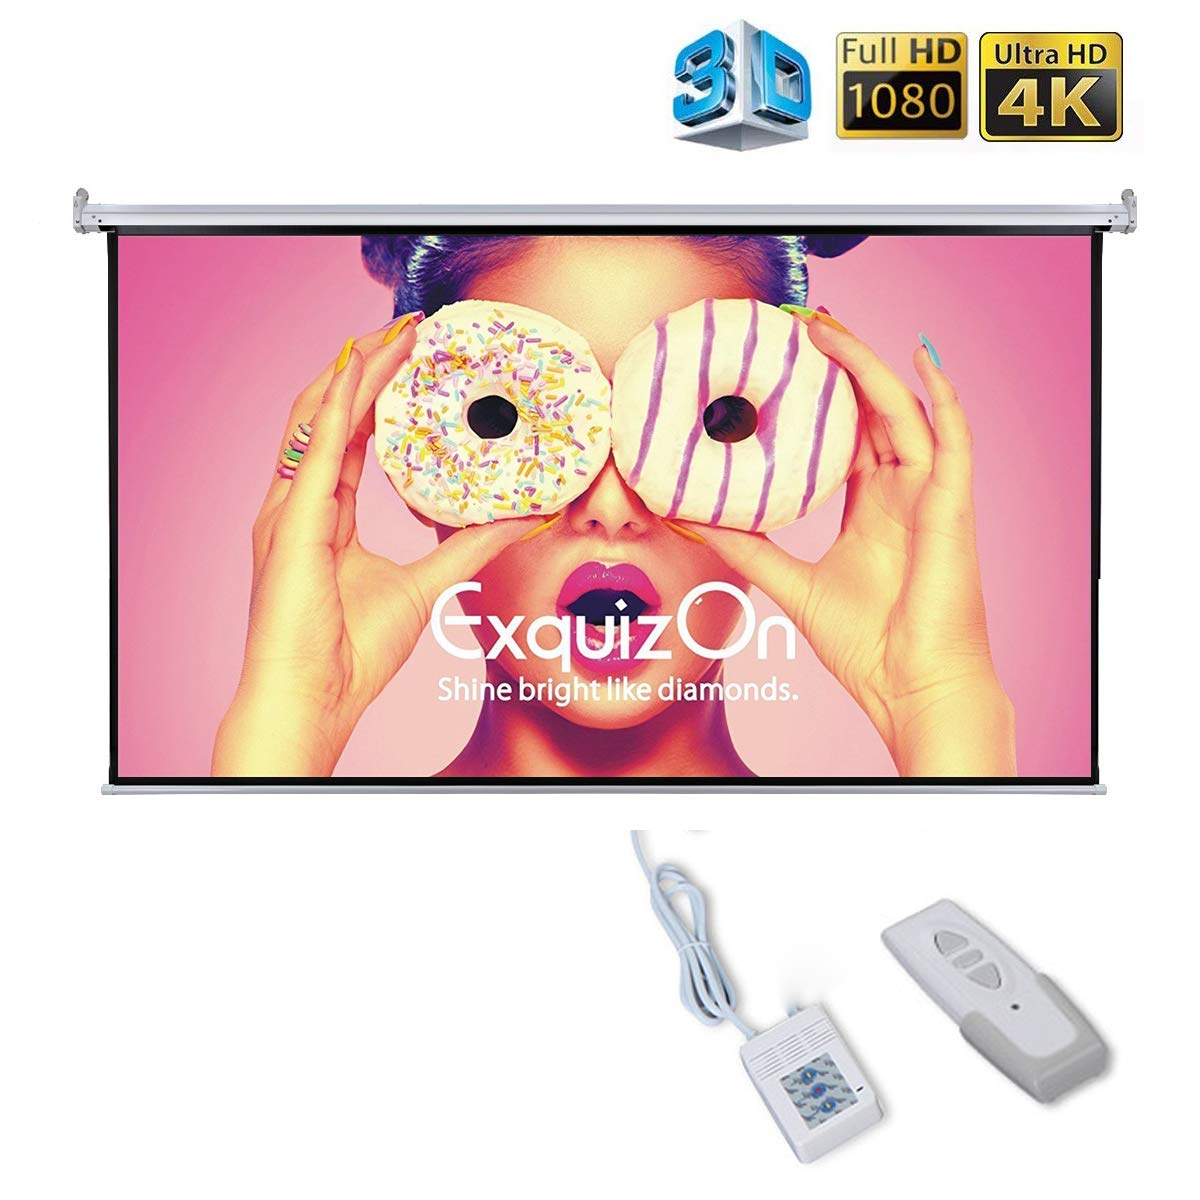 Motorized Projector Screen with Remote Control, ExquizOn Ceiling Wall Portable Projector Screen 100 inch 16:9 1.2 Gain AUTO Electric HD 4K Indoor Outdoor for Family Home Theater and Office